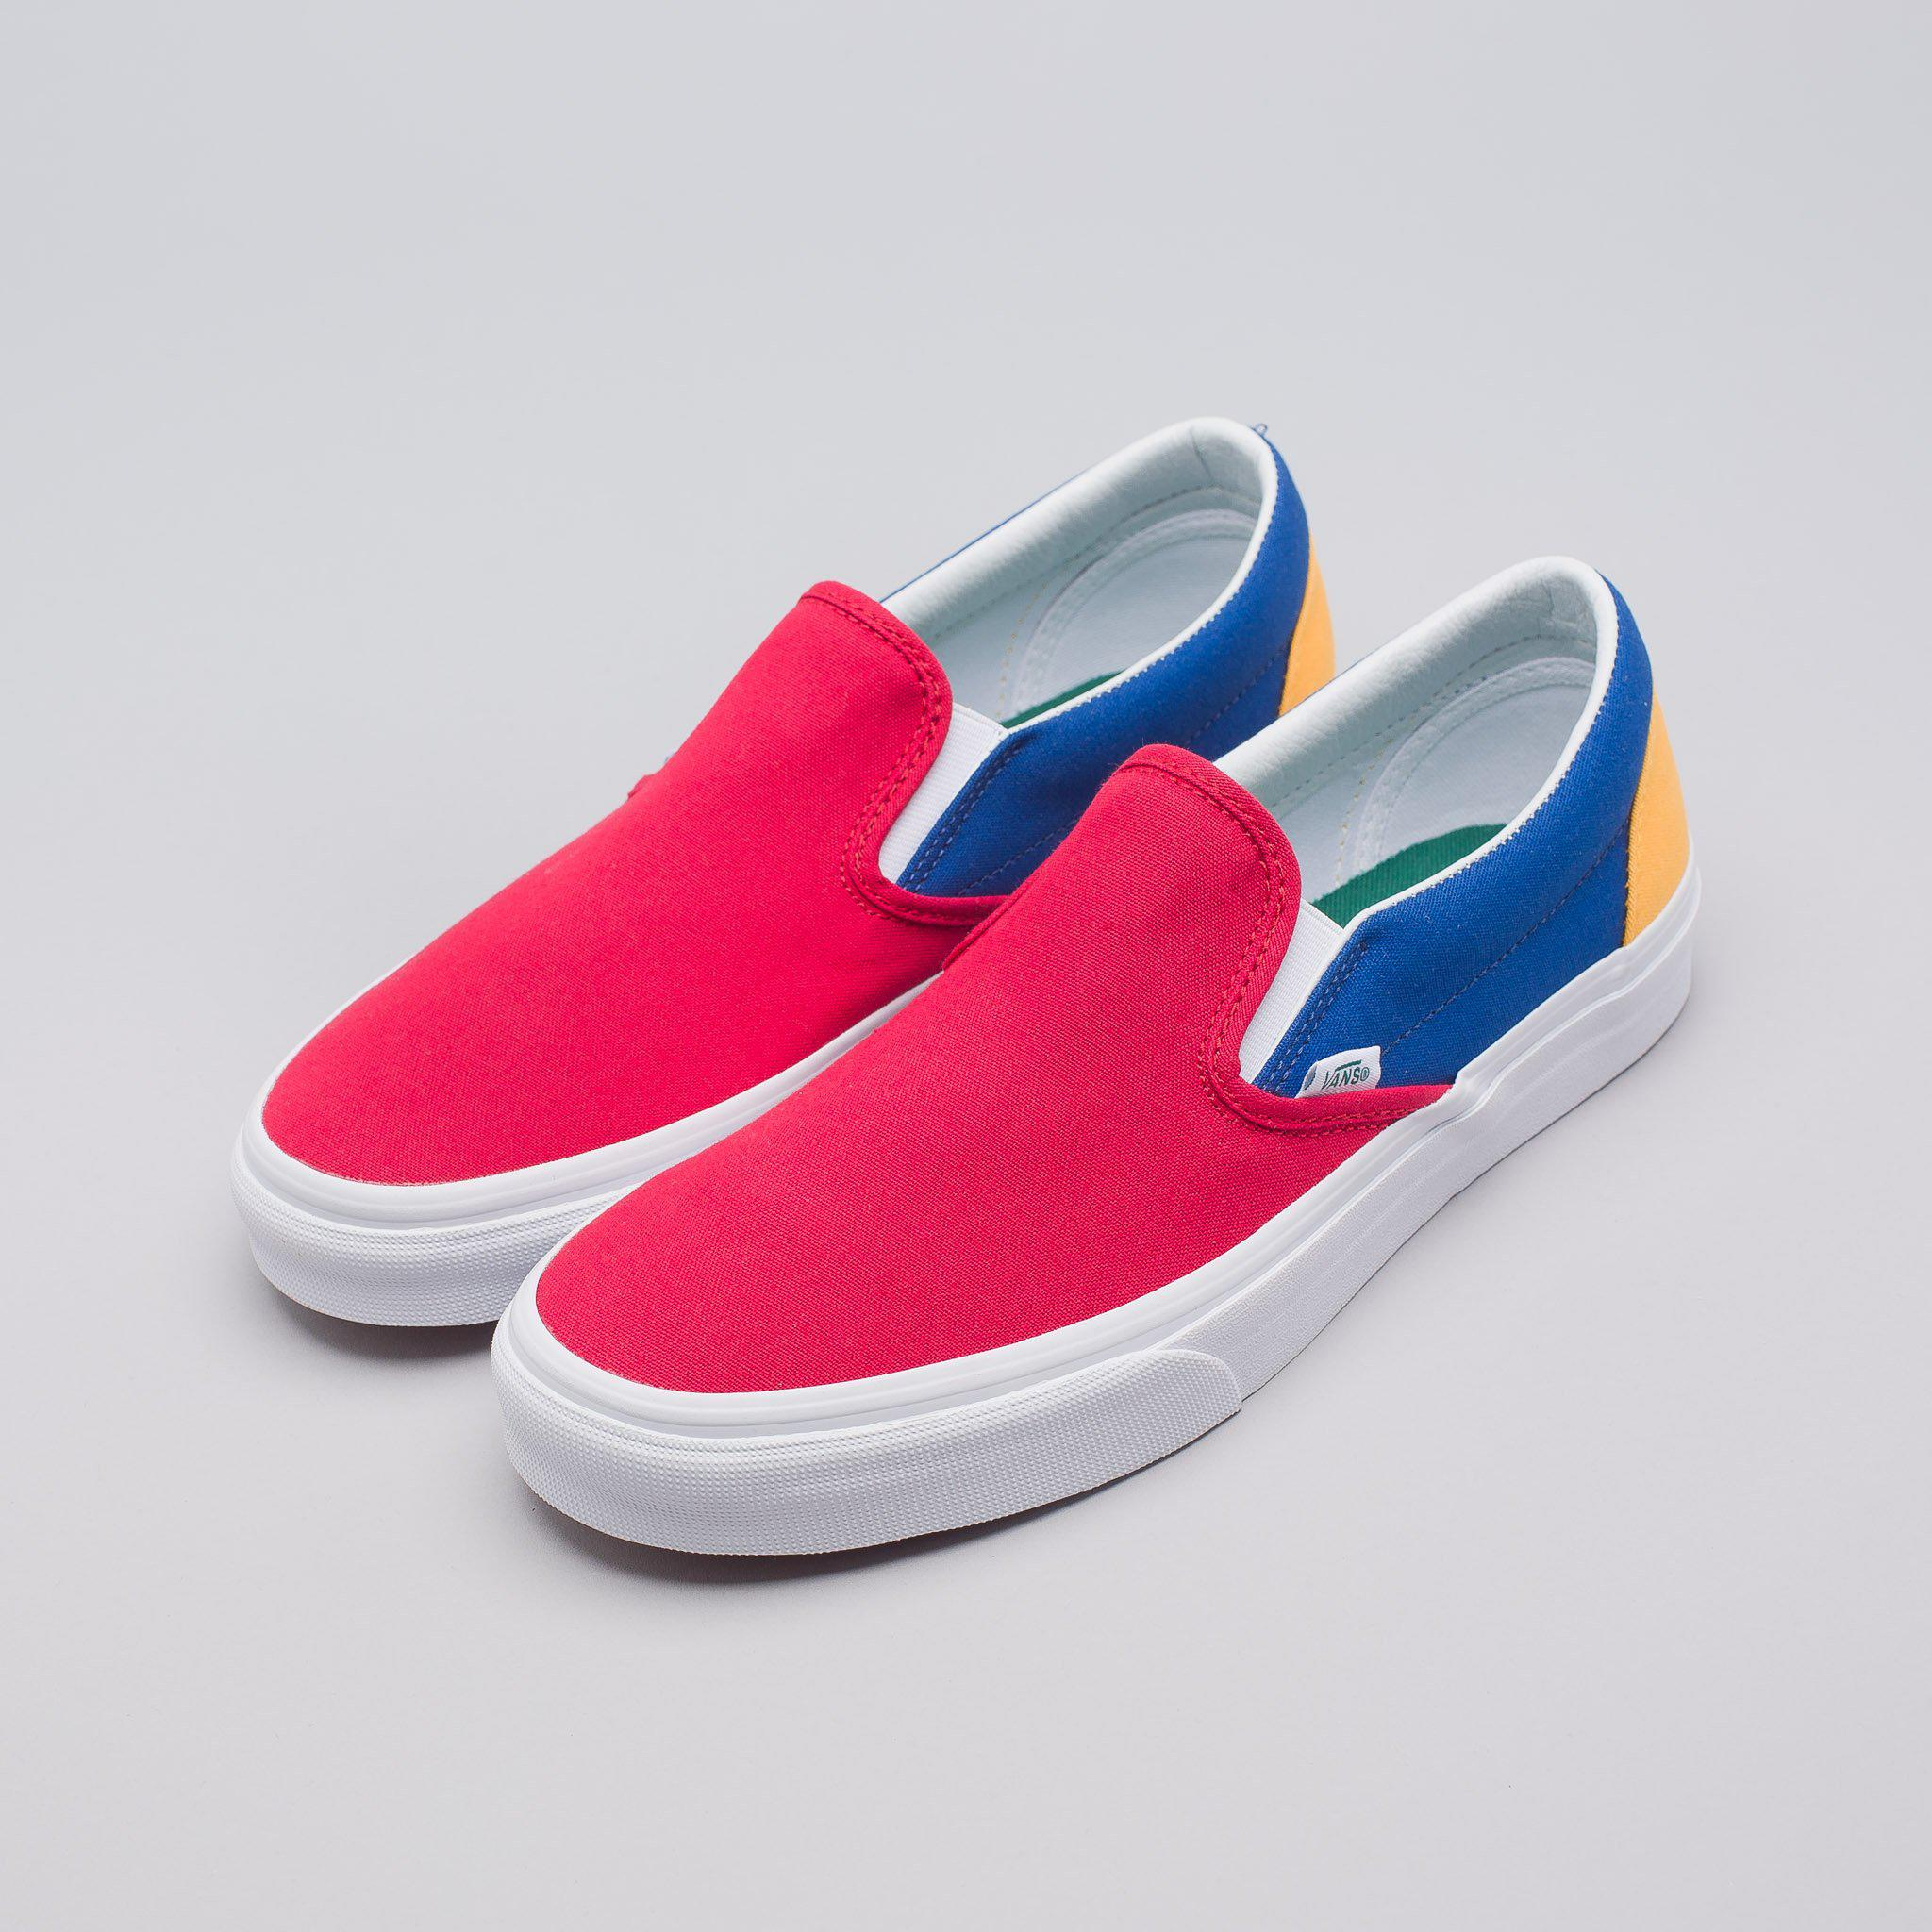 0762bf343a9ba3 Lyst - Vans Yacht Club Classic Slip-on In Red blue yellow in Blue ...